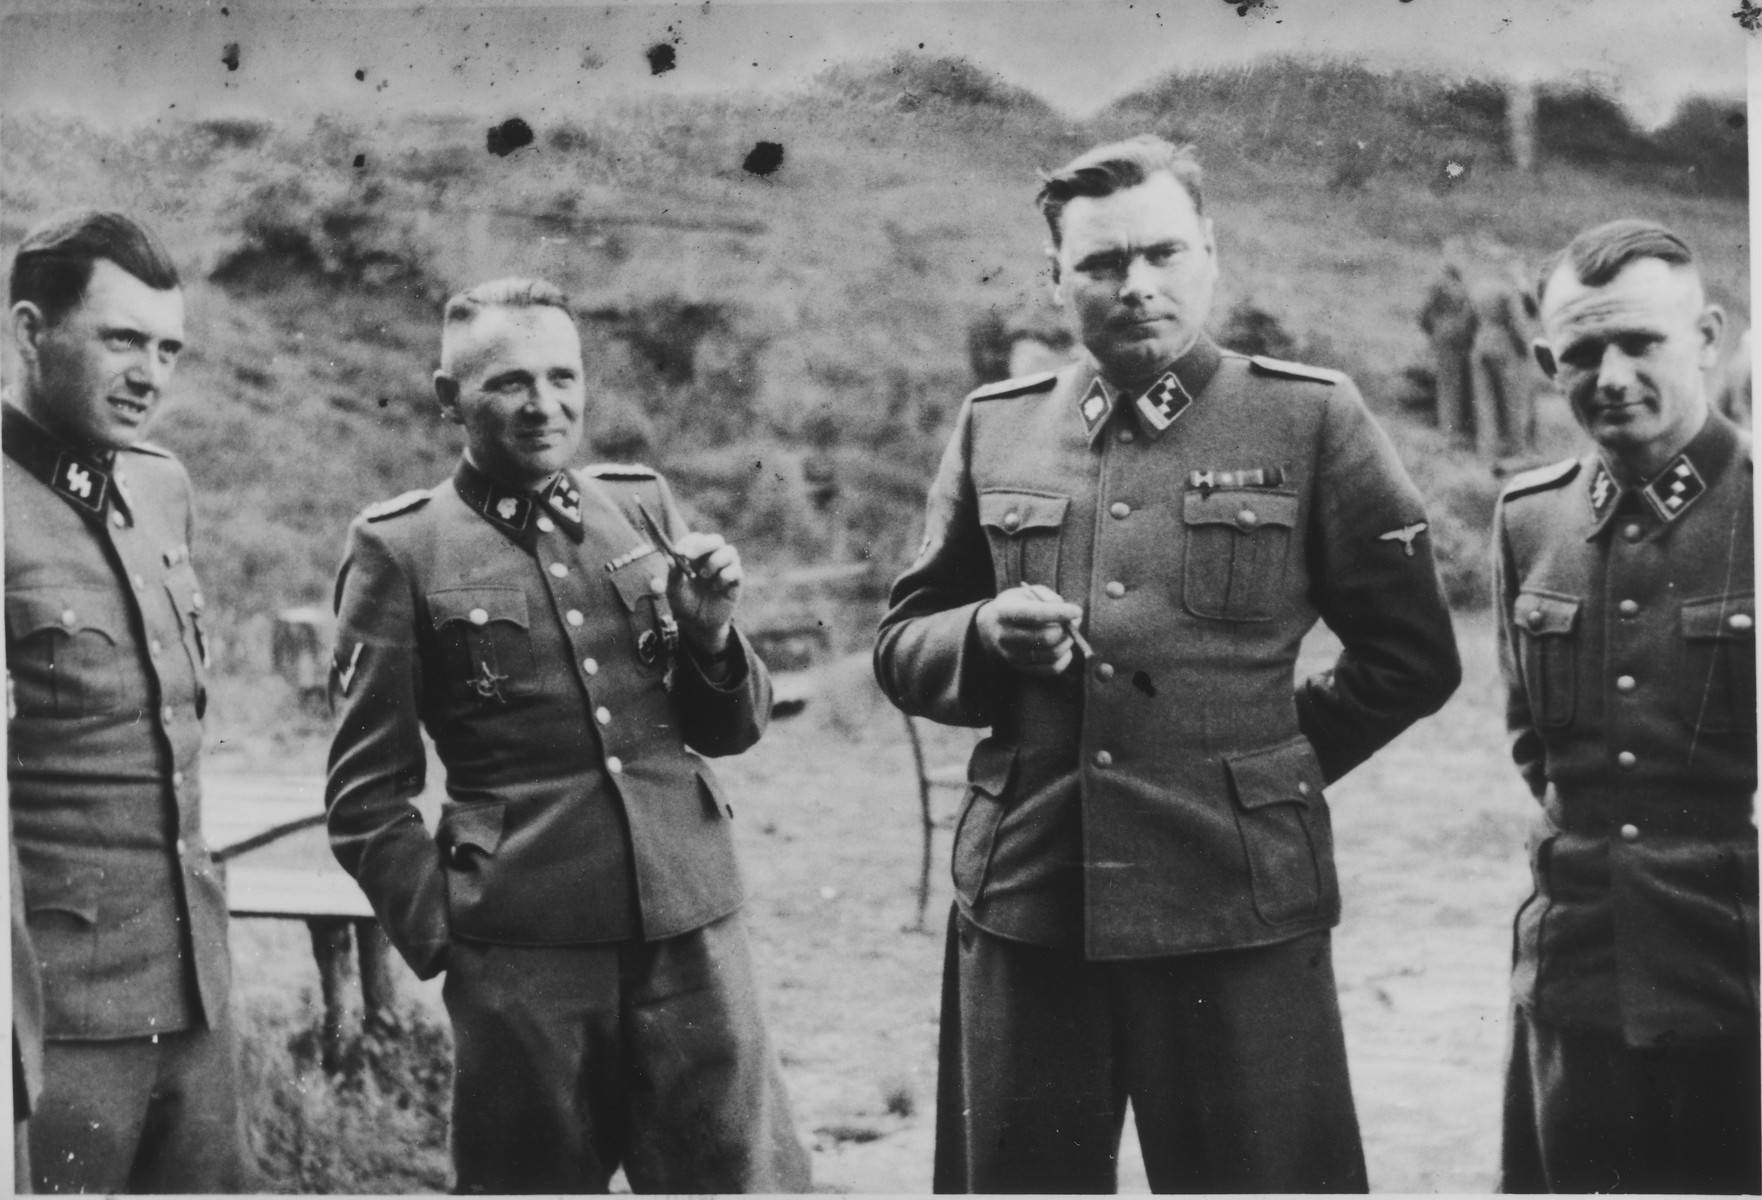 SS officers socialize on the grounds of the SS retreat Solahuette outside of Auschwitz.   From left to right they are: Dr. Josef Mengele, Rudolf Hoess (former Commandant of Auschwitz), Josef Kramer (Commandant of Birkenau) and Anton Thumann.   [Based on the officers visiting Solahutte, we surmise that the photographs were taken to honor Rudolf Hoess who completed his tenure as garrison senior on July 29.]